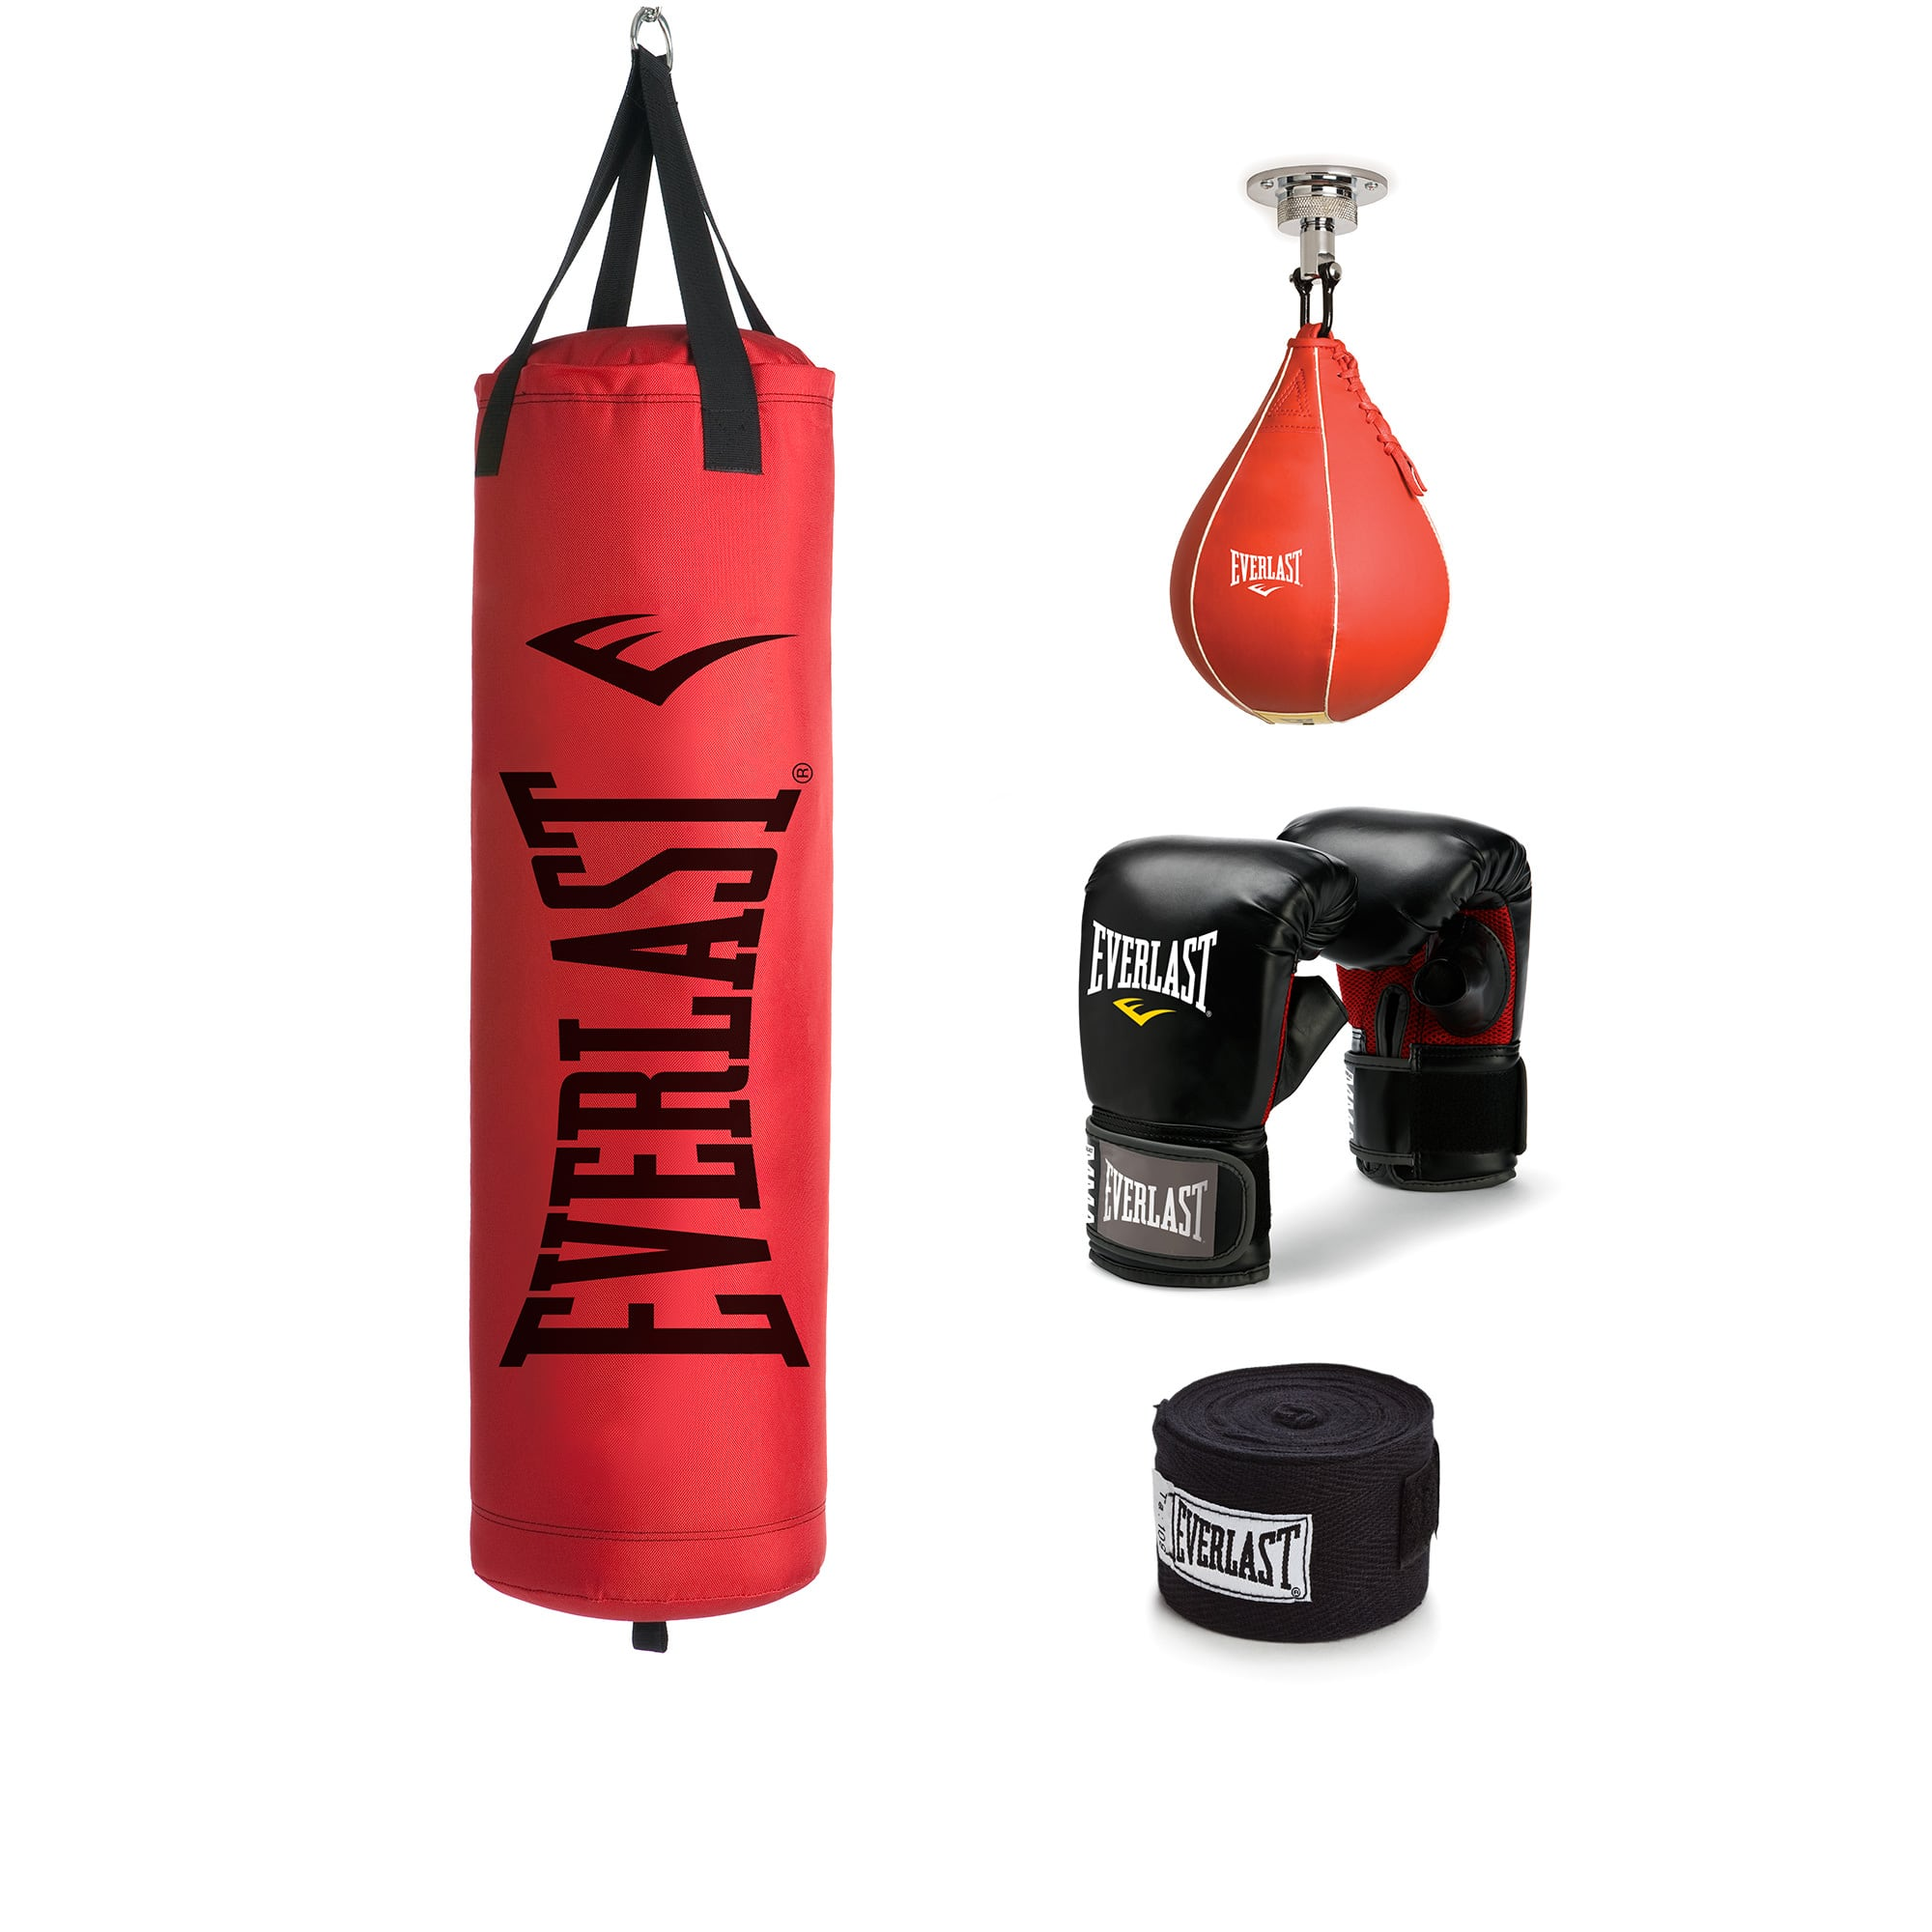 Everlast 70 lb Poly Canvas Red Heavy Bag / Punching Bag Kit $69.99